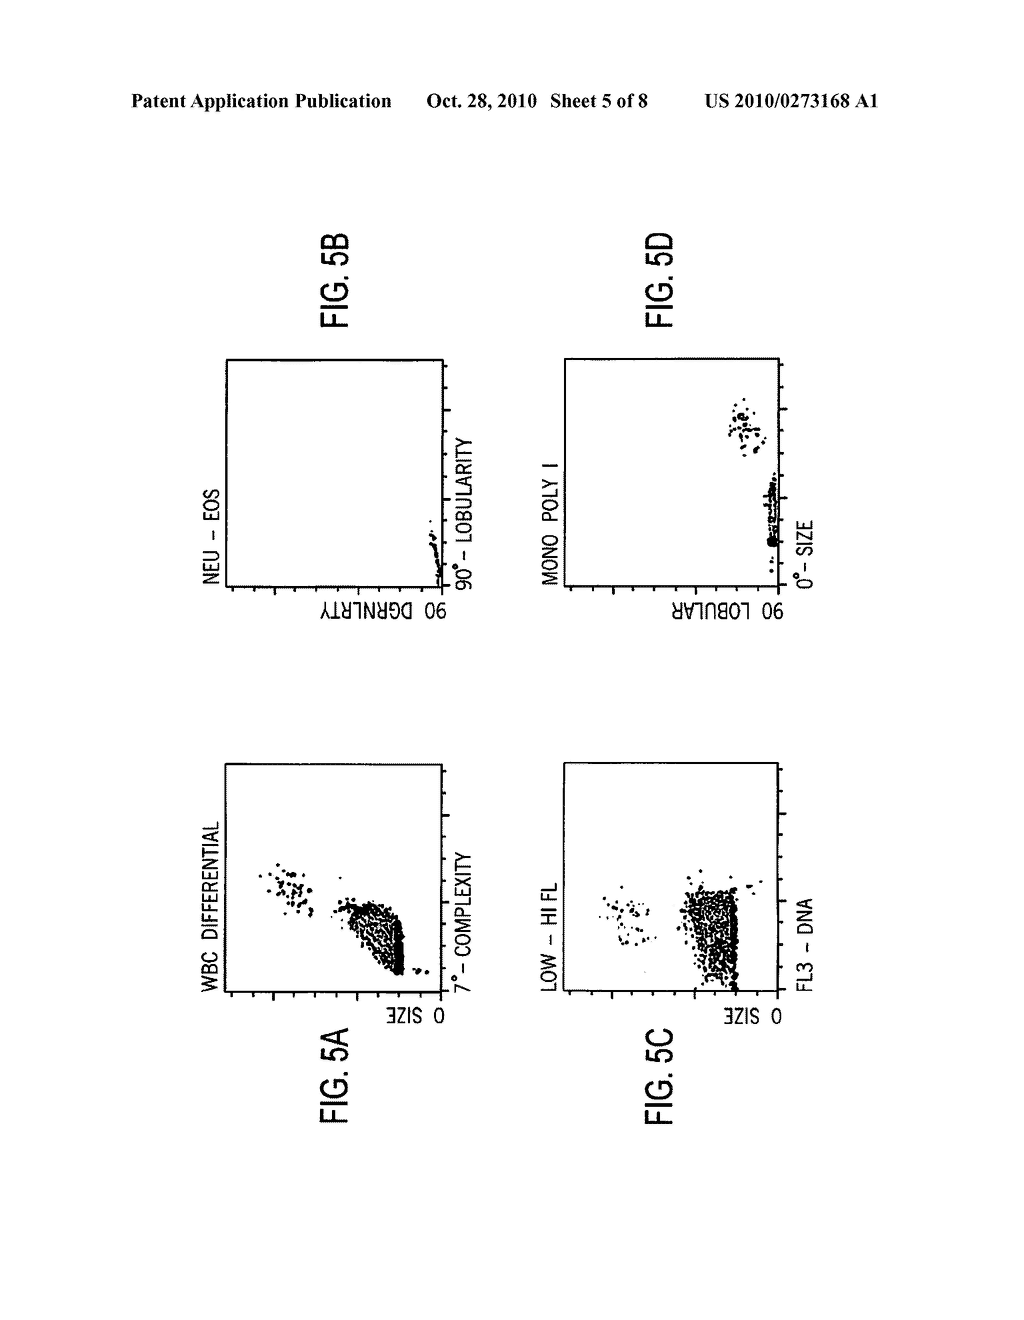 Method For Discriminating Red Blood Cells From White By Diagram Using Forward Scattering A Laser In An Automated Hematology Analyzer